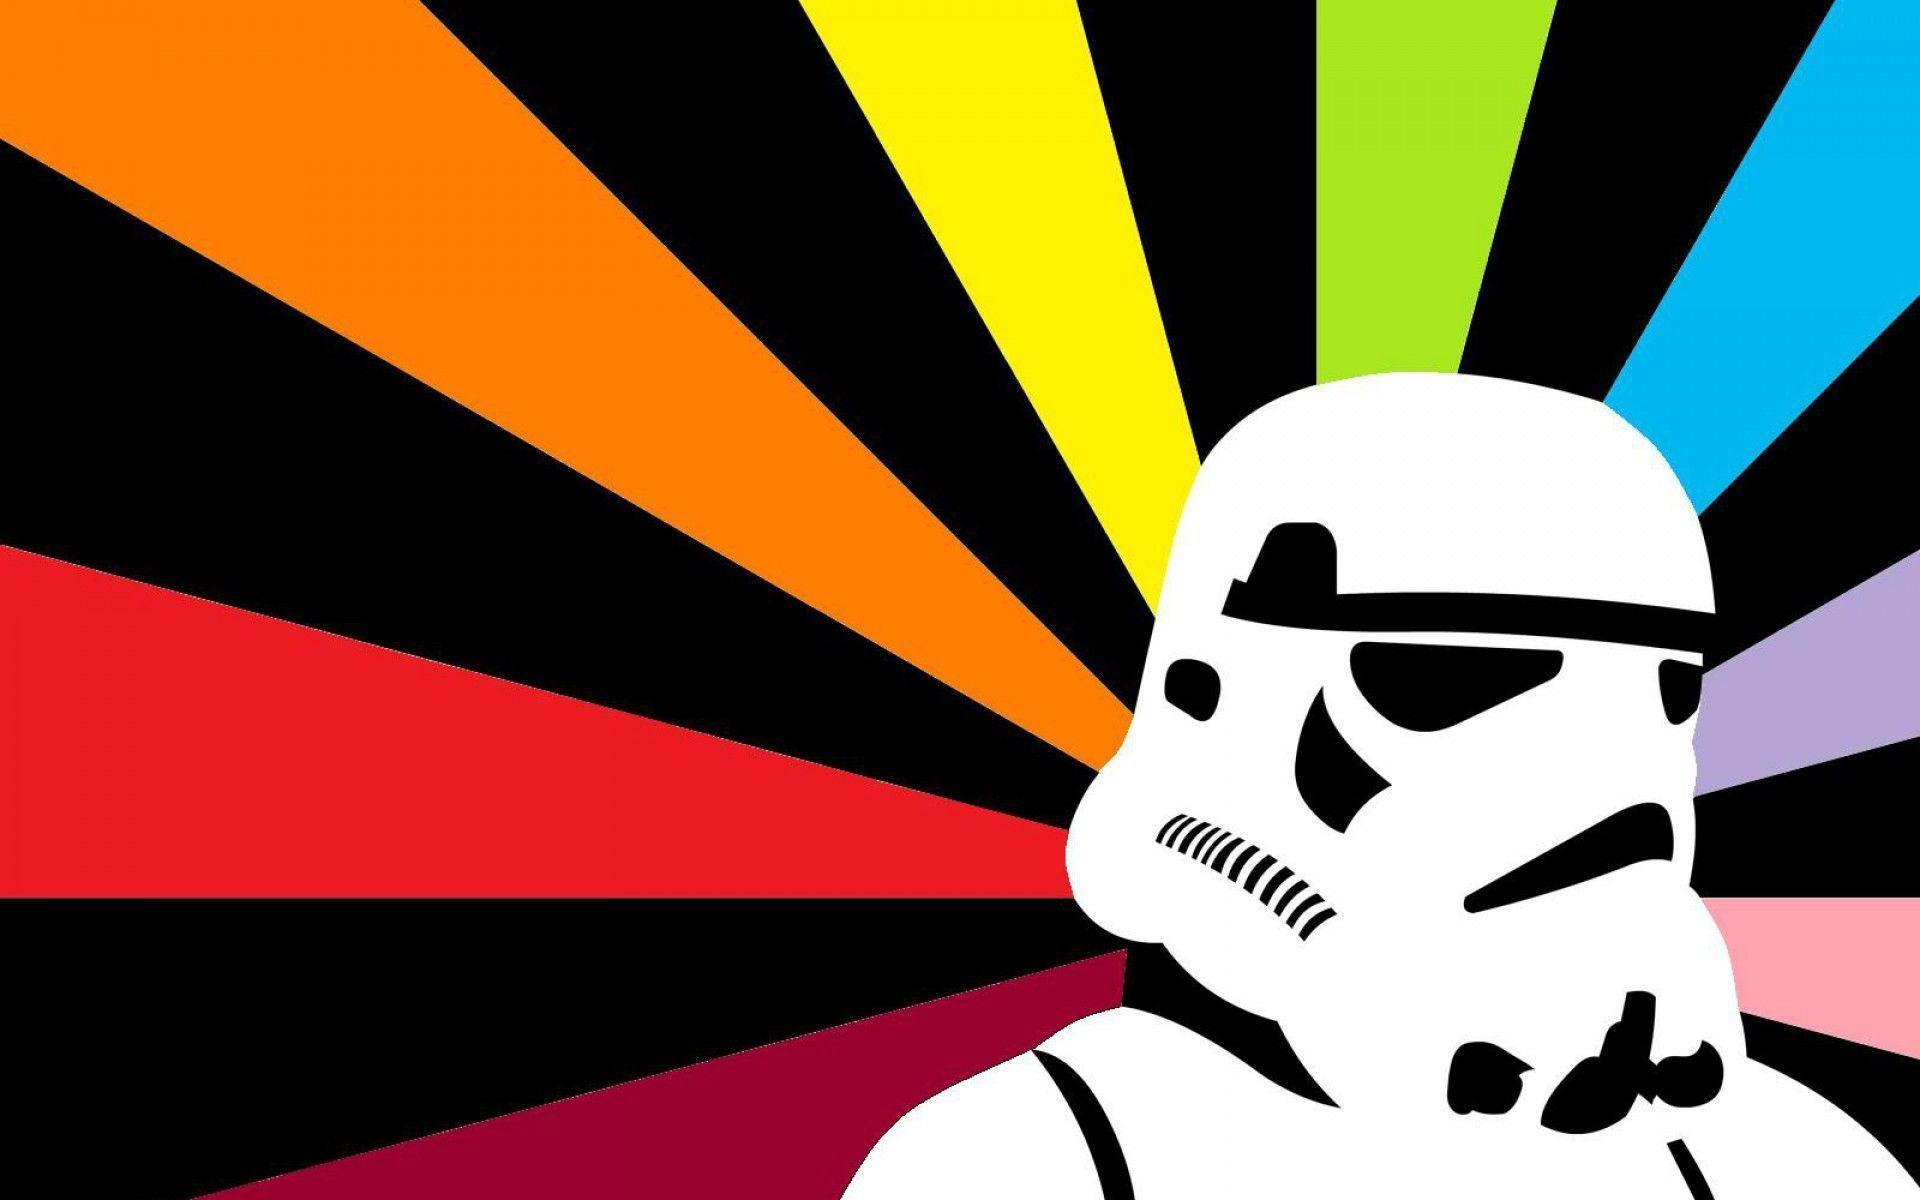 Stormtrooper wallpapers wallpaper cave for Art minimal facebook